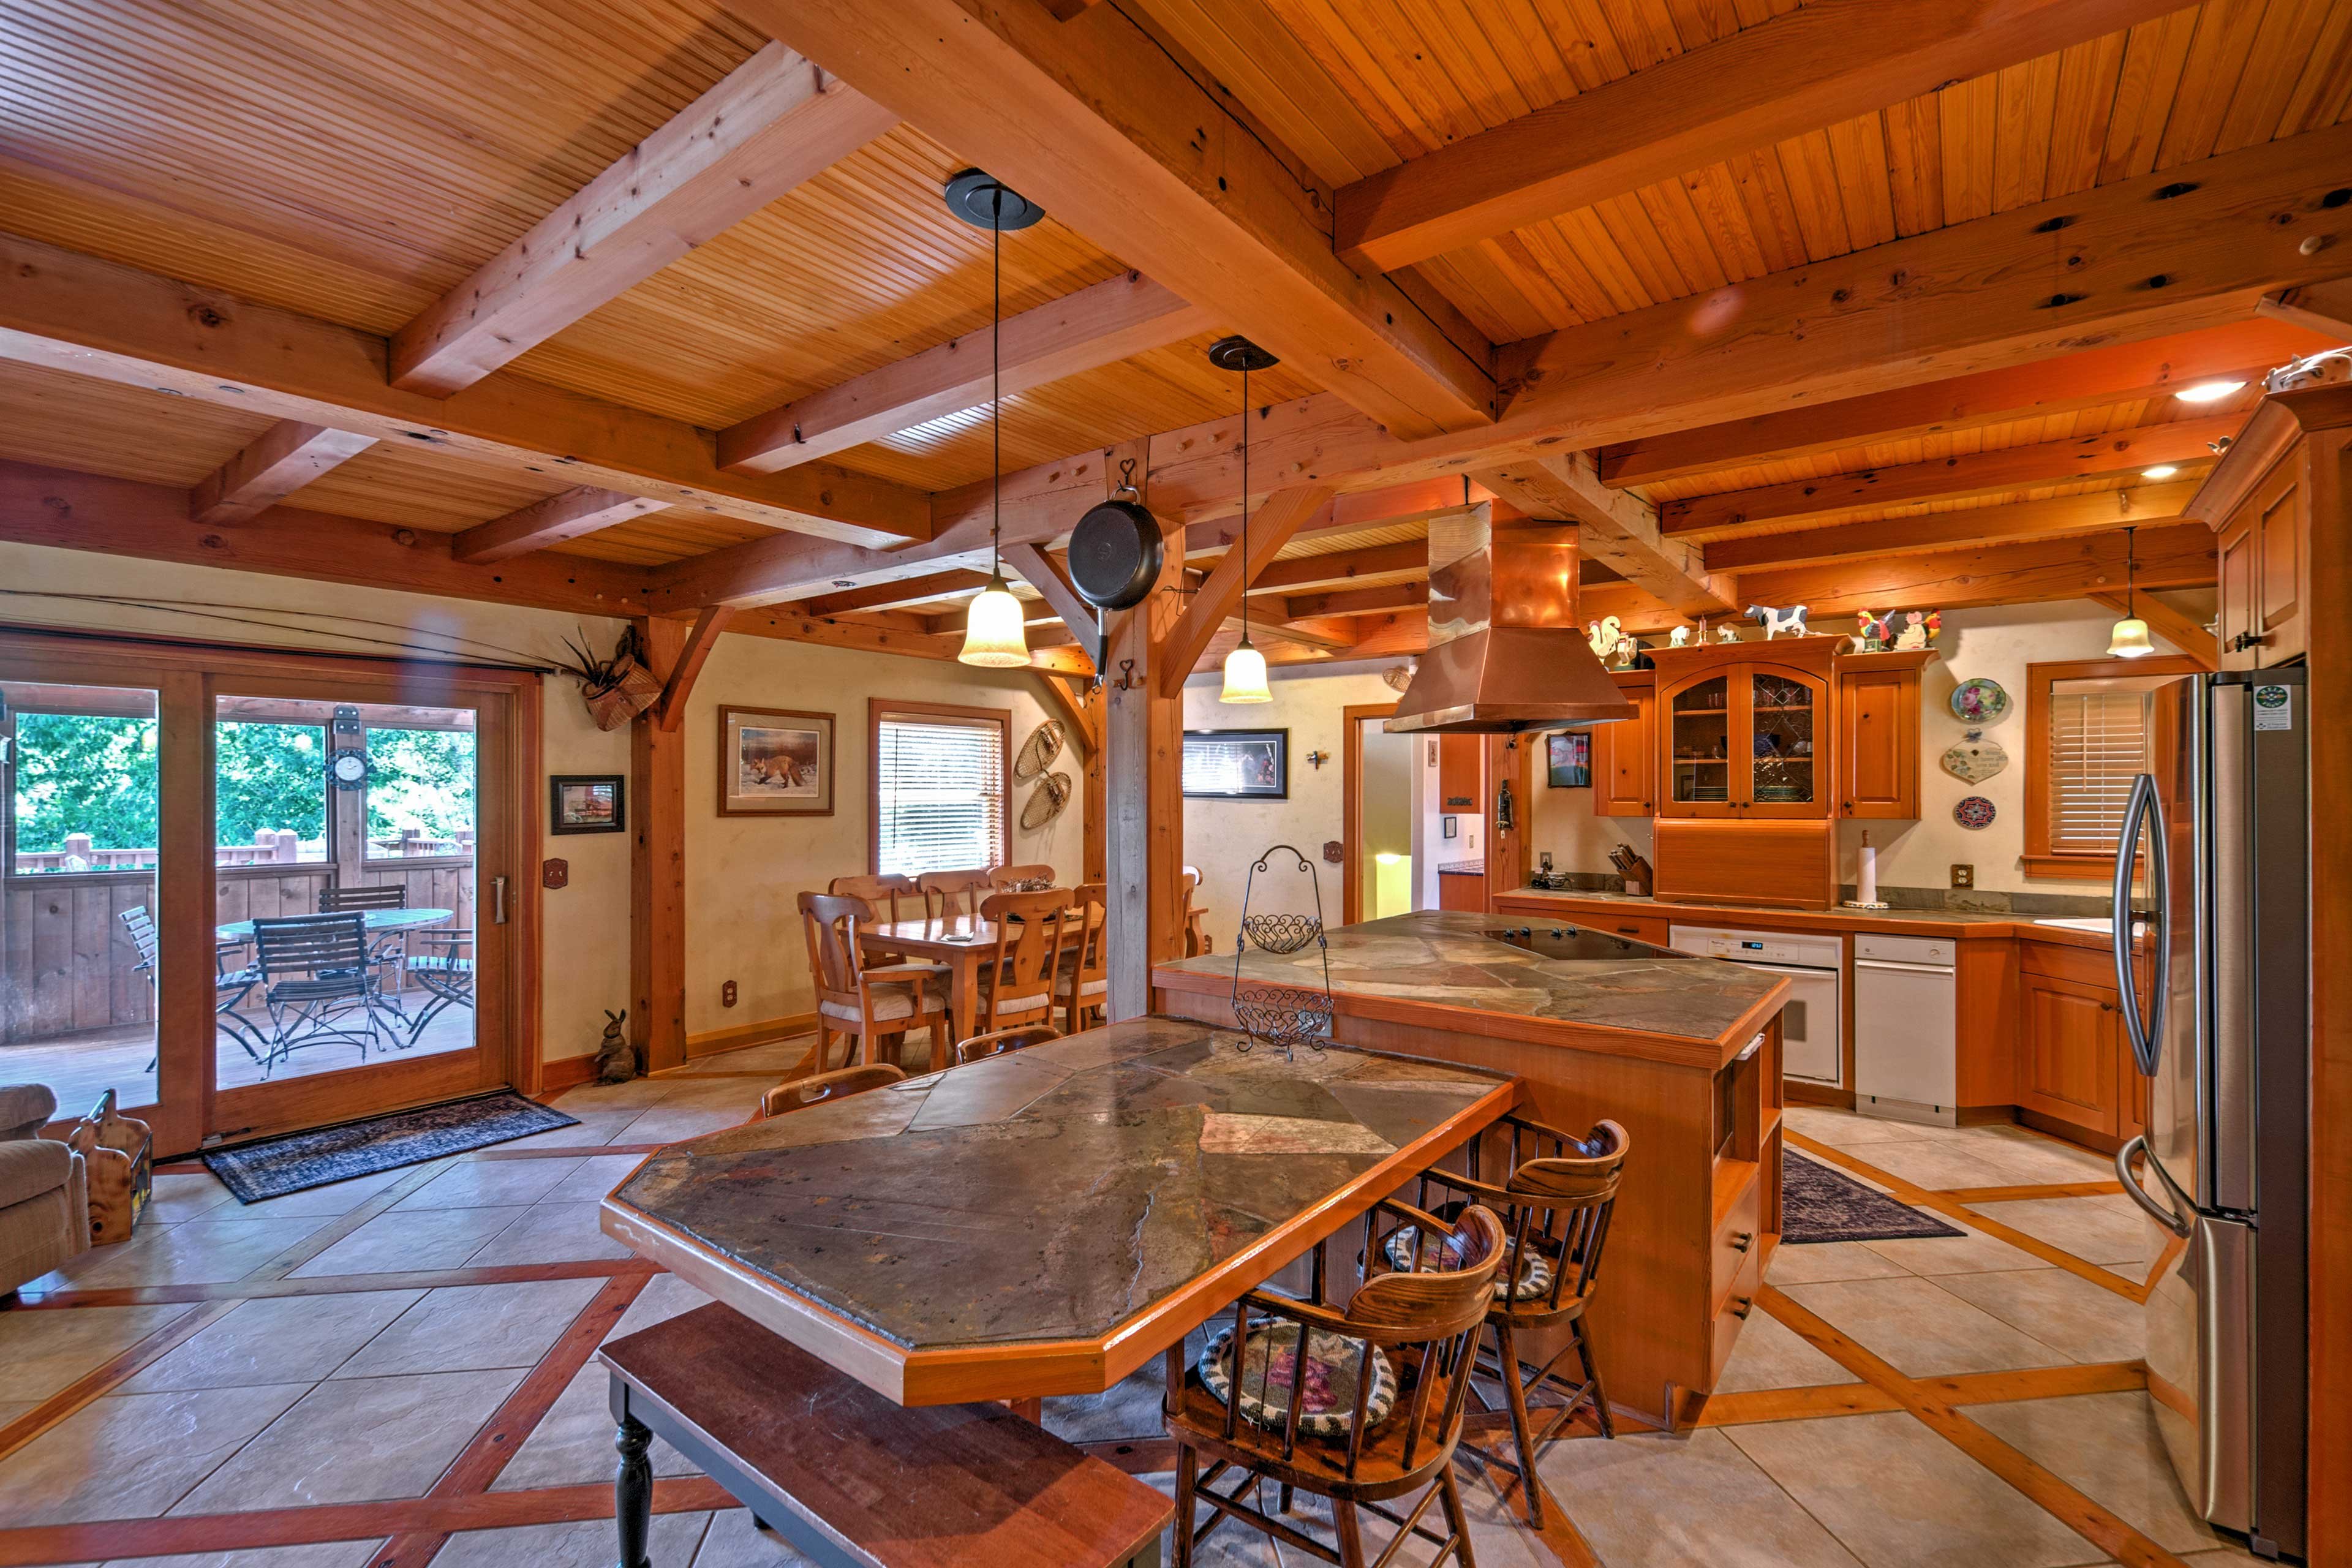 The kitchen features stainless steel appliances, a center island and paneling.